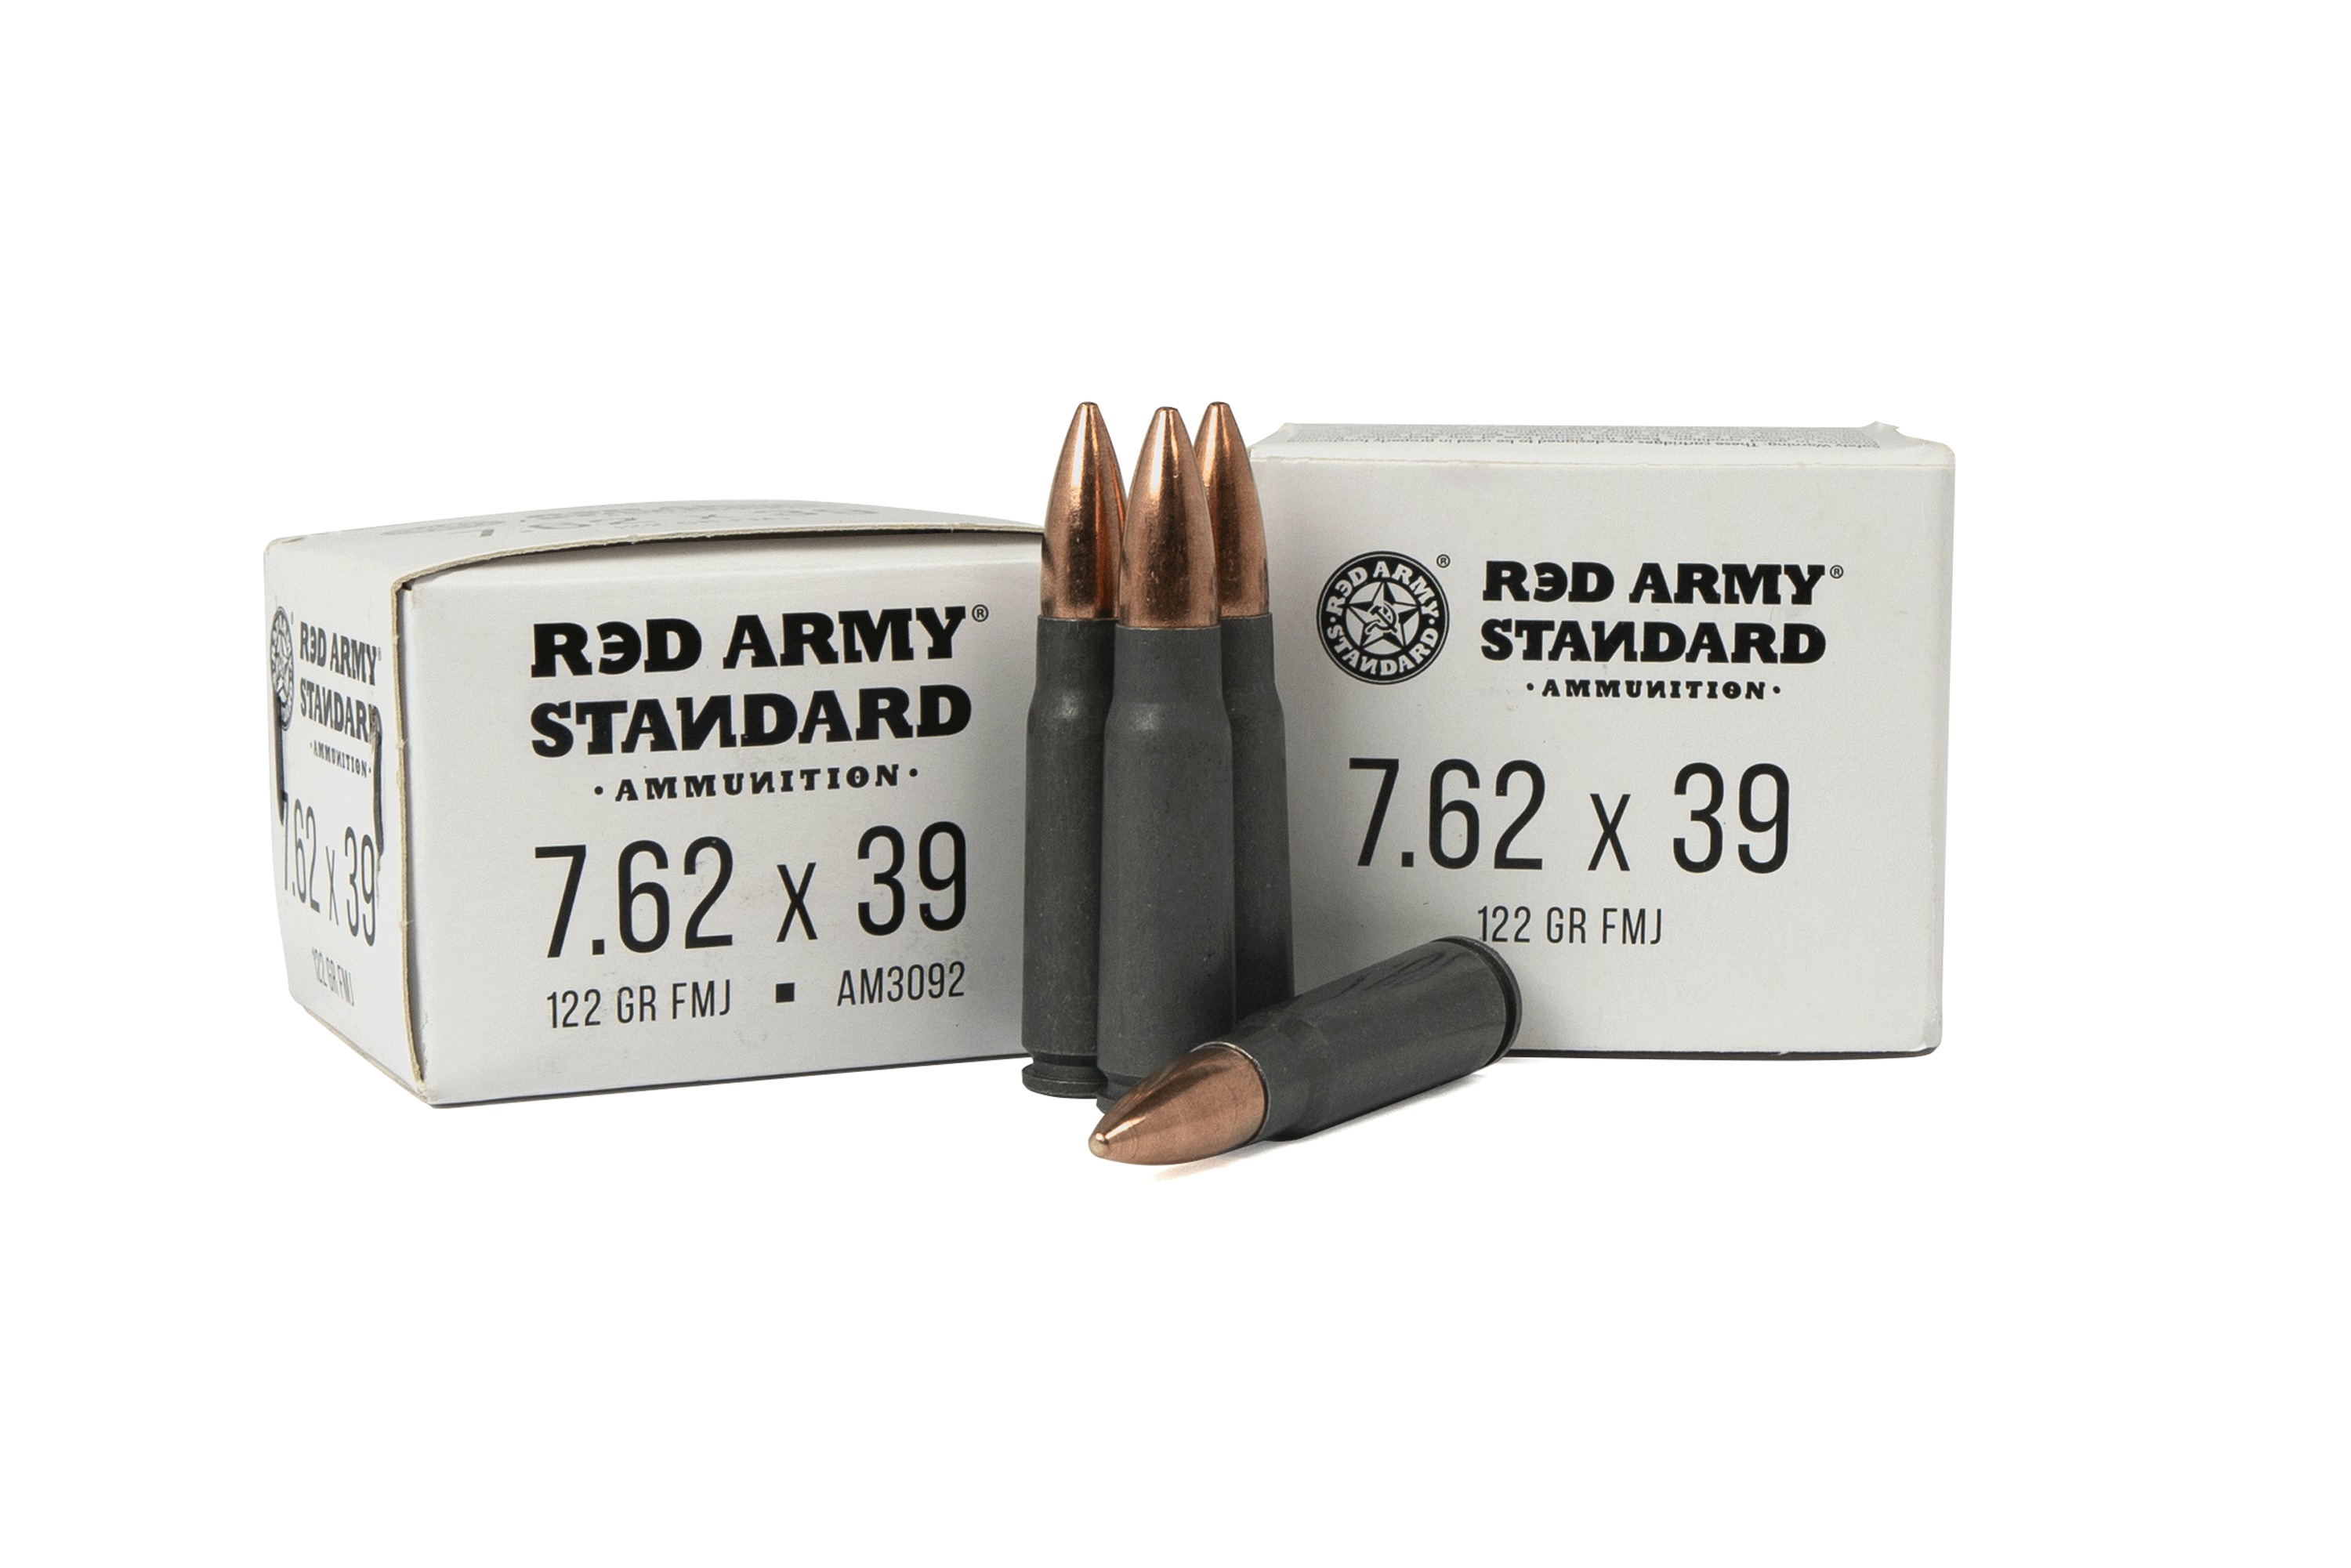 Red Army Standard Introduces A White Box Packaged Price Point Ammunition